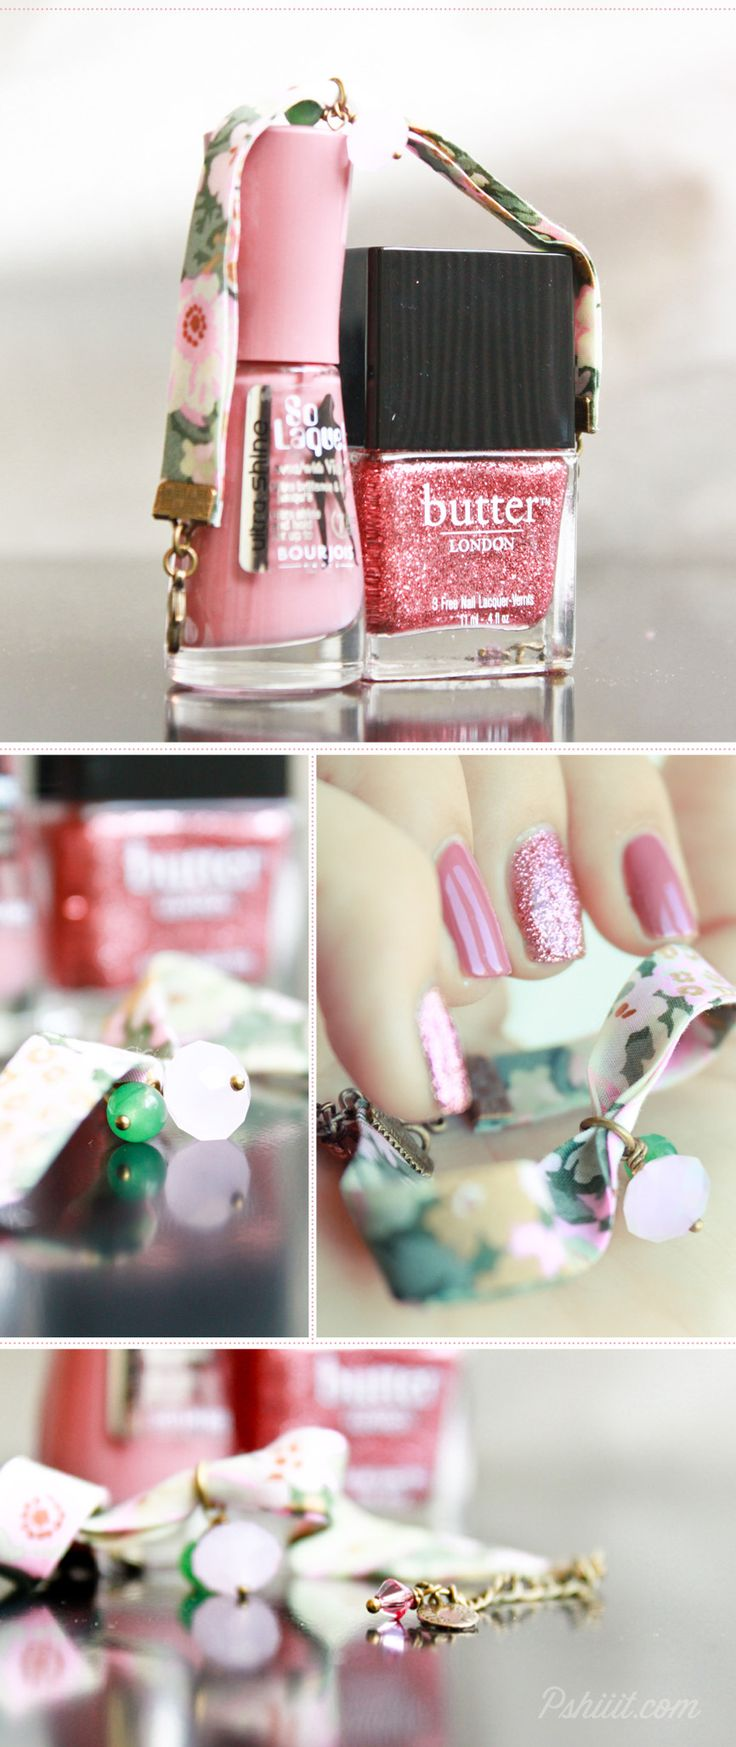 Butter London - Rosie Lee ♥ Bourjois - Beige Glamour